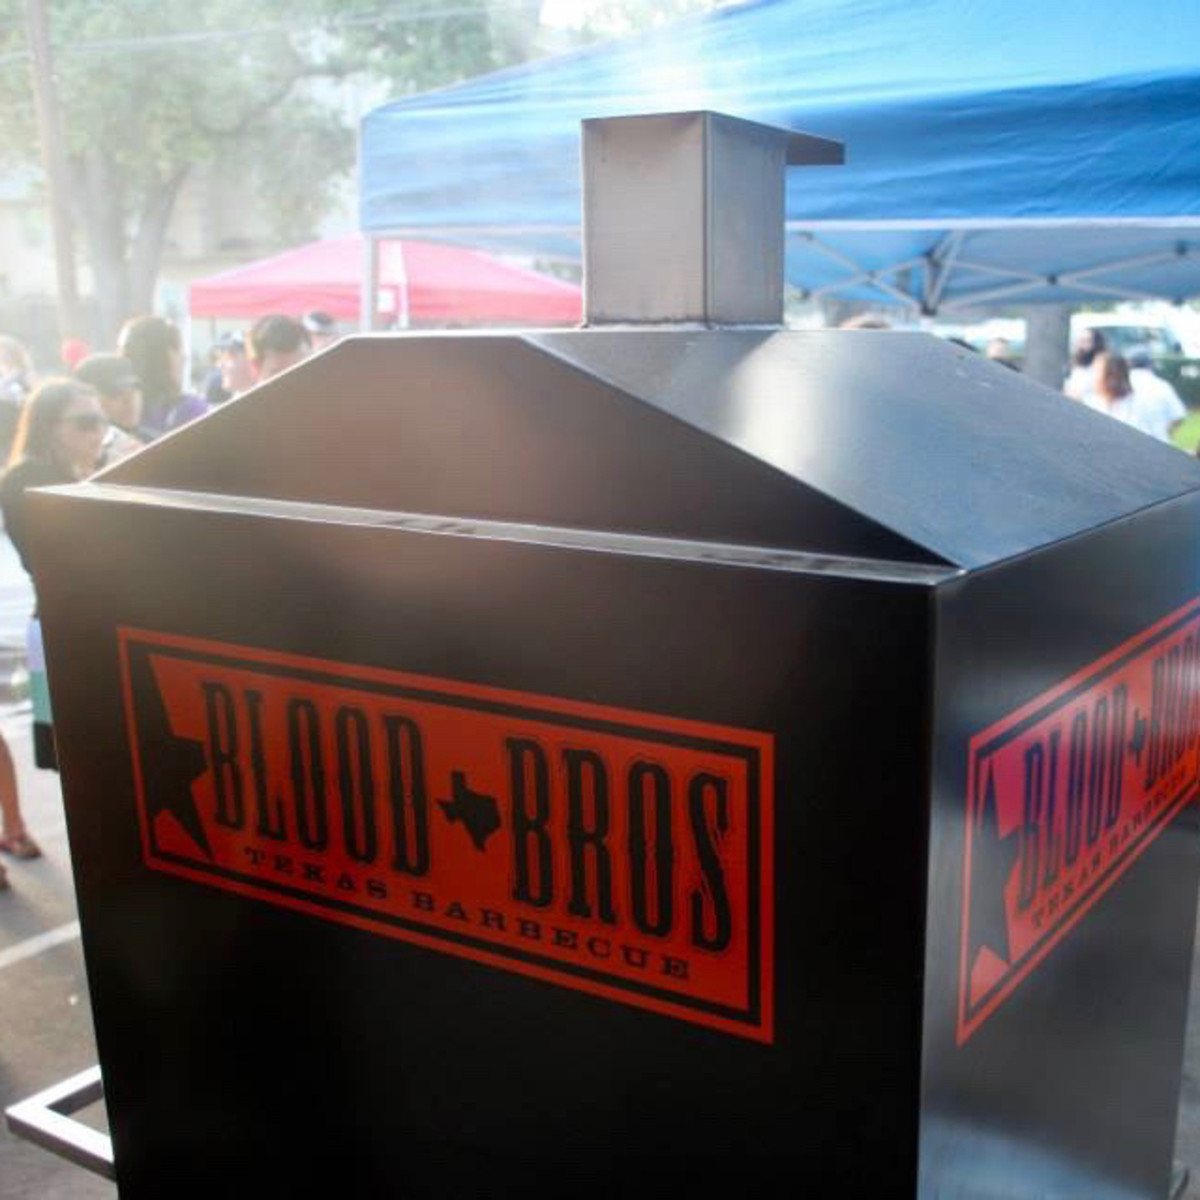 Blood Bros. BBQ smoker